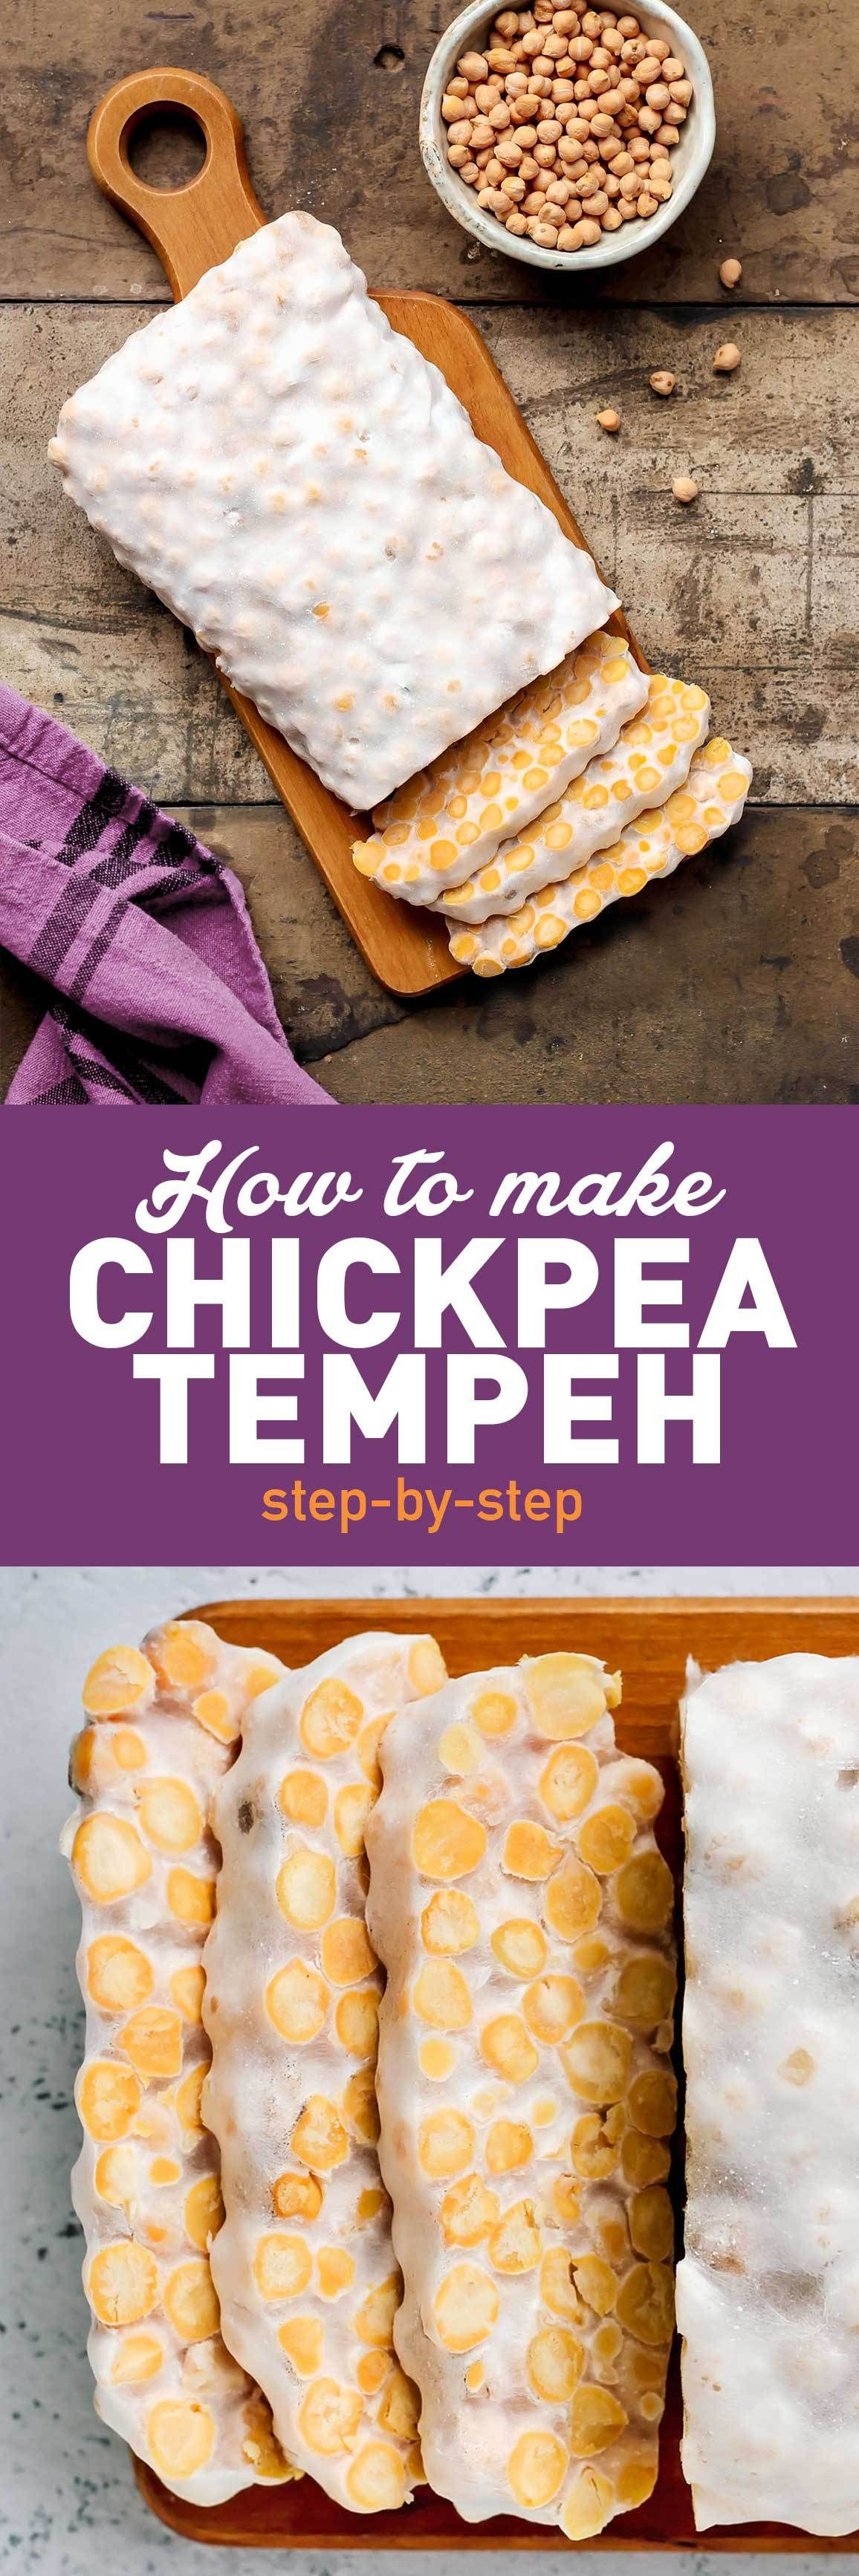 How To Make Chickpea Tempeh Recipe Fermented Foods Tempeh Food